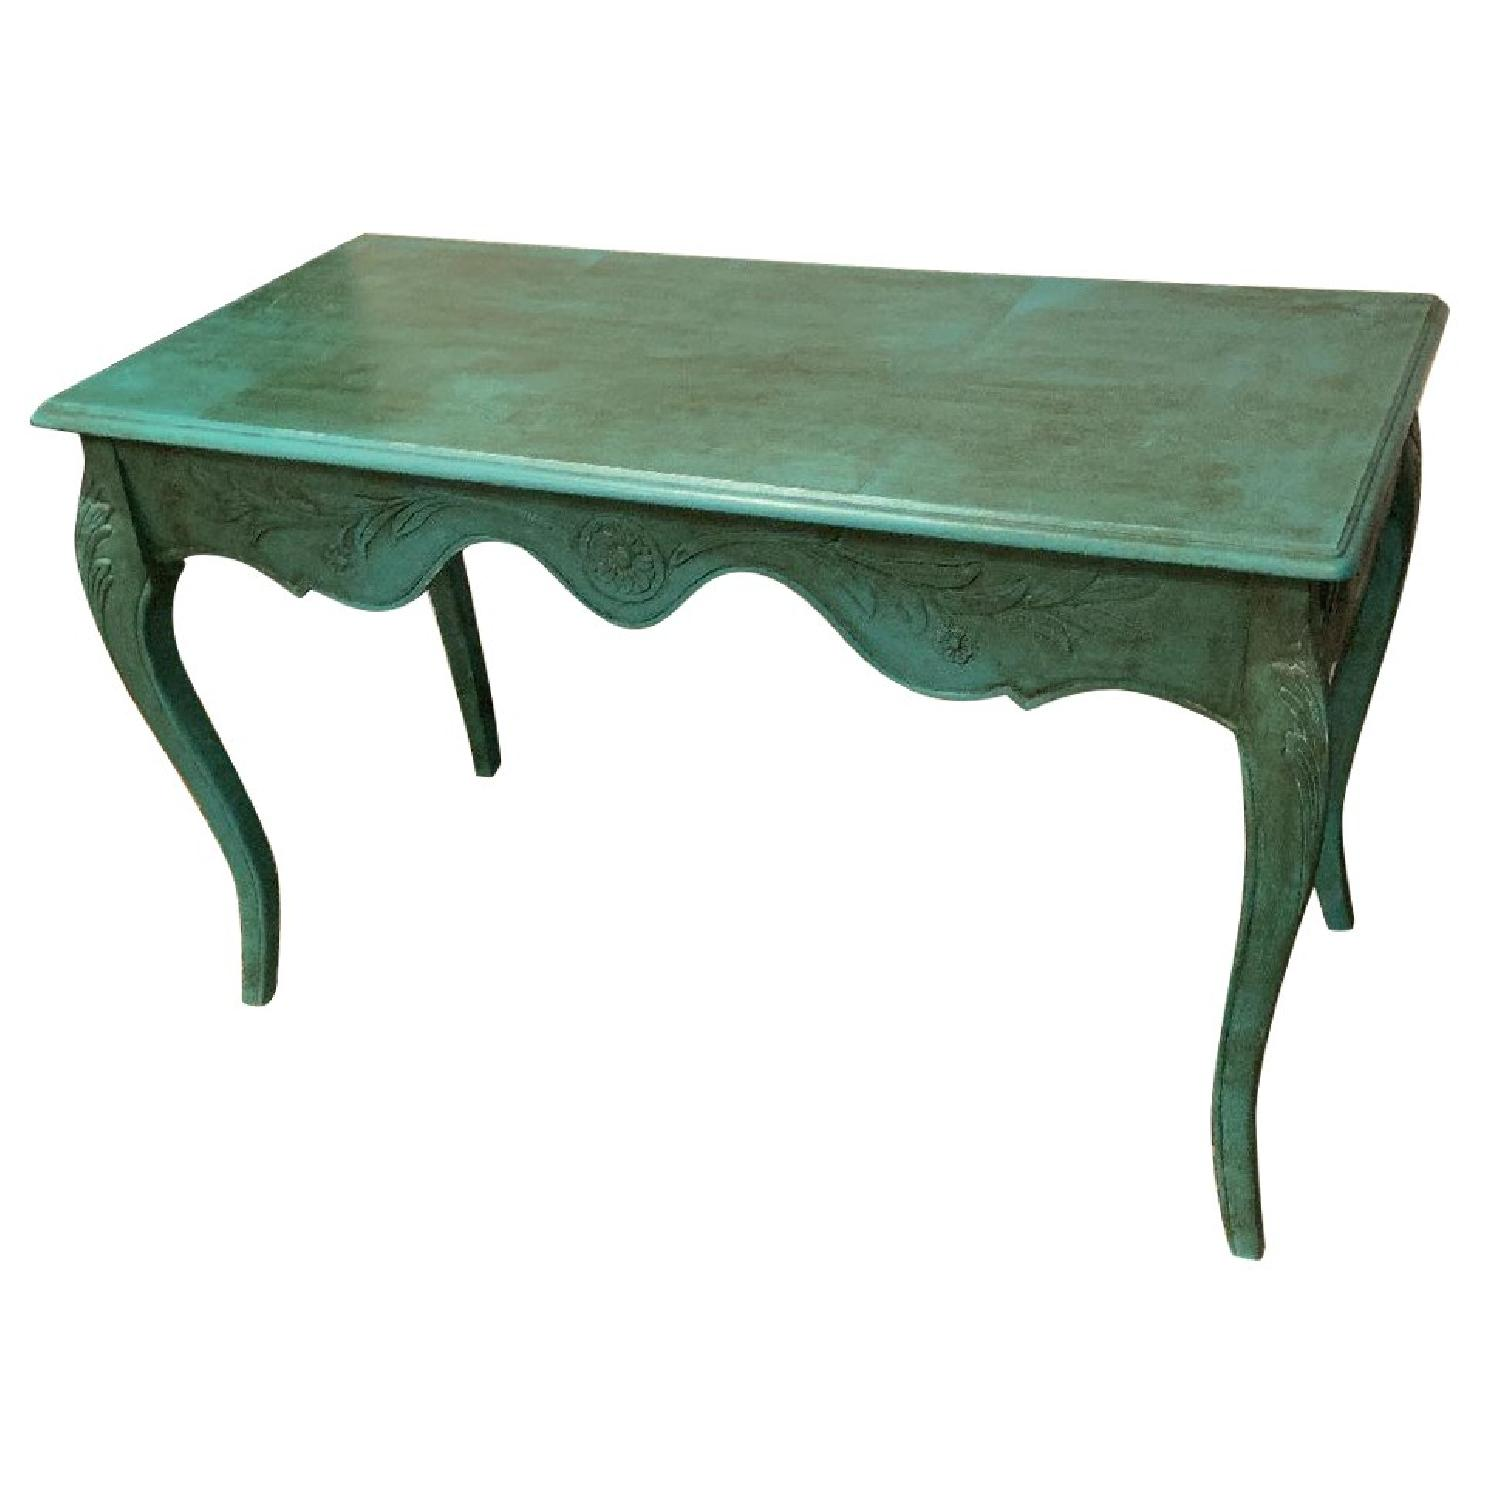 Vintage French Desk/Console/Entry Table